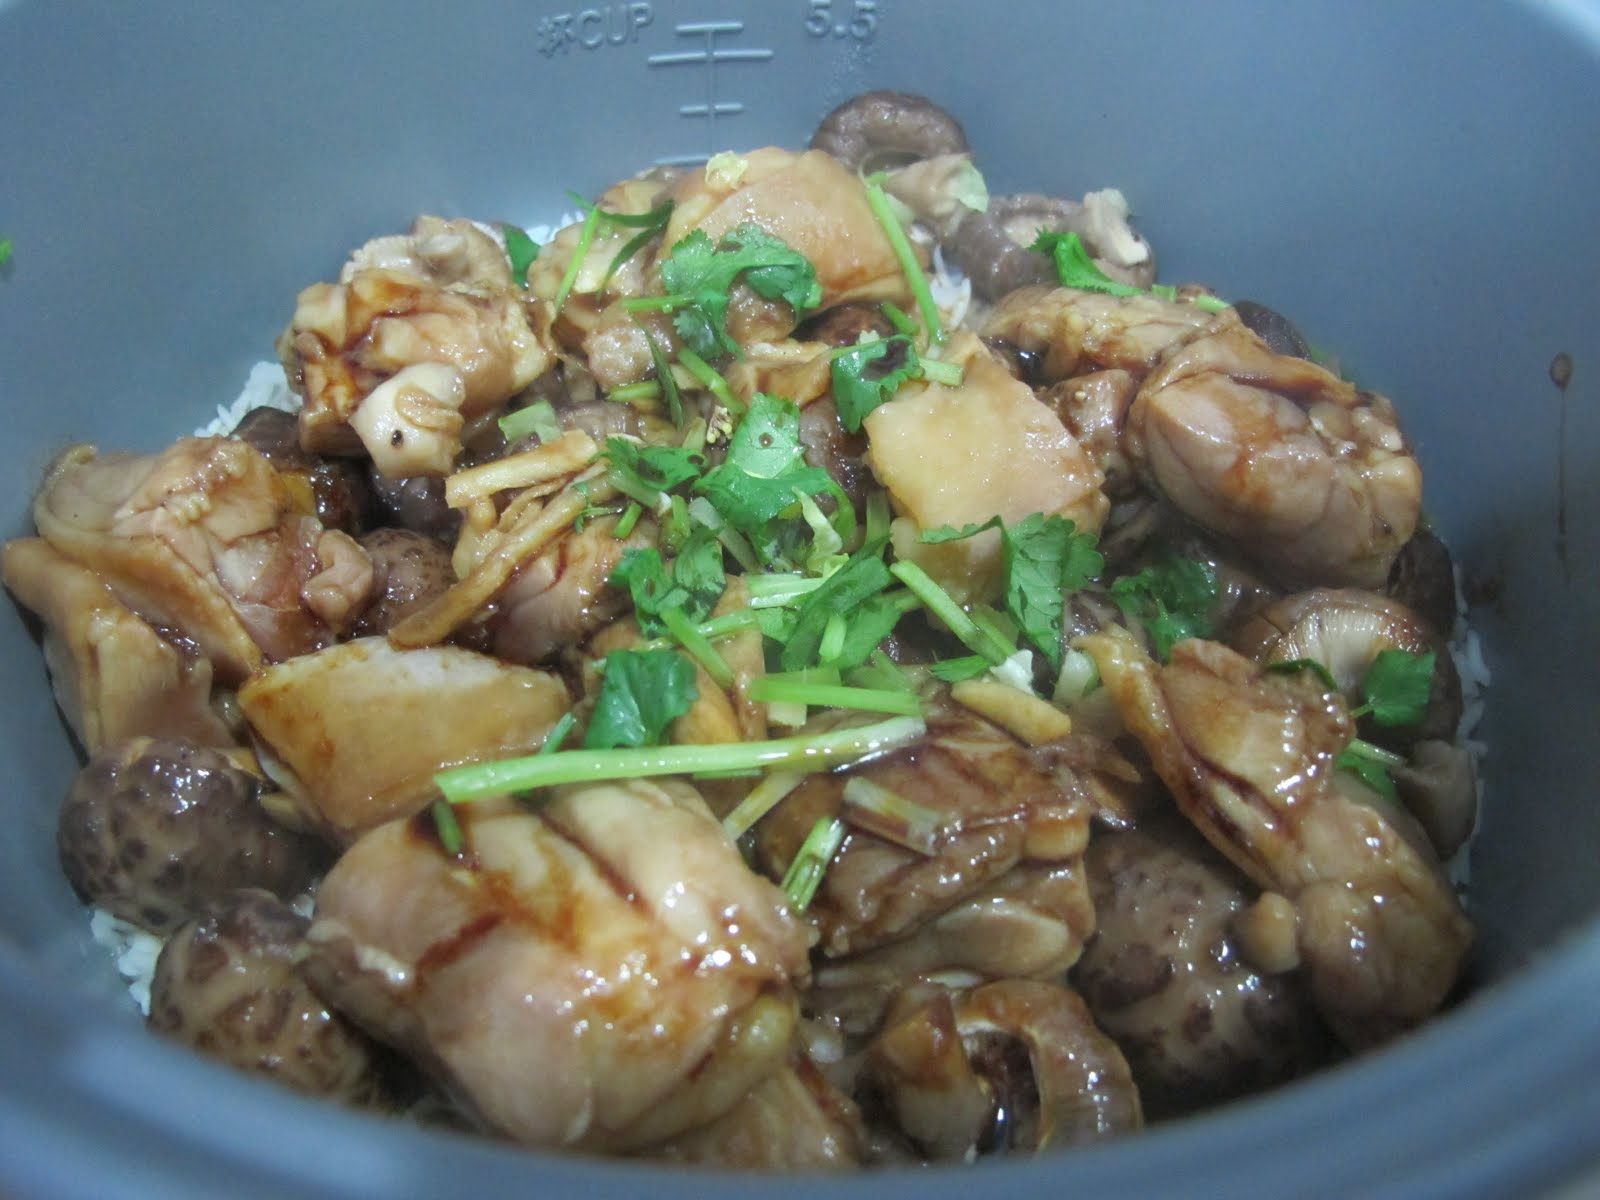 ... and shiitake braised shiitake mushrooms in steamed chicken shiitake